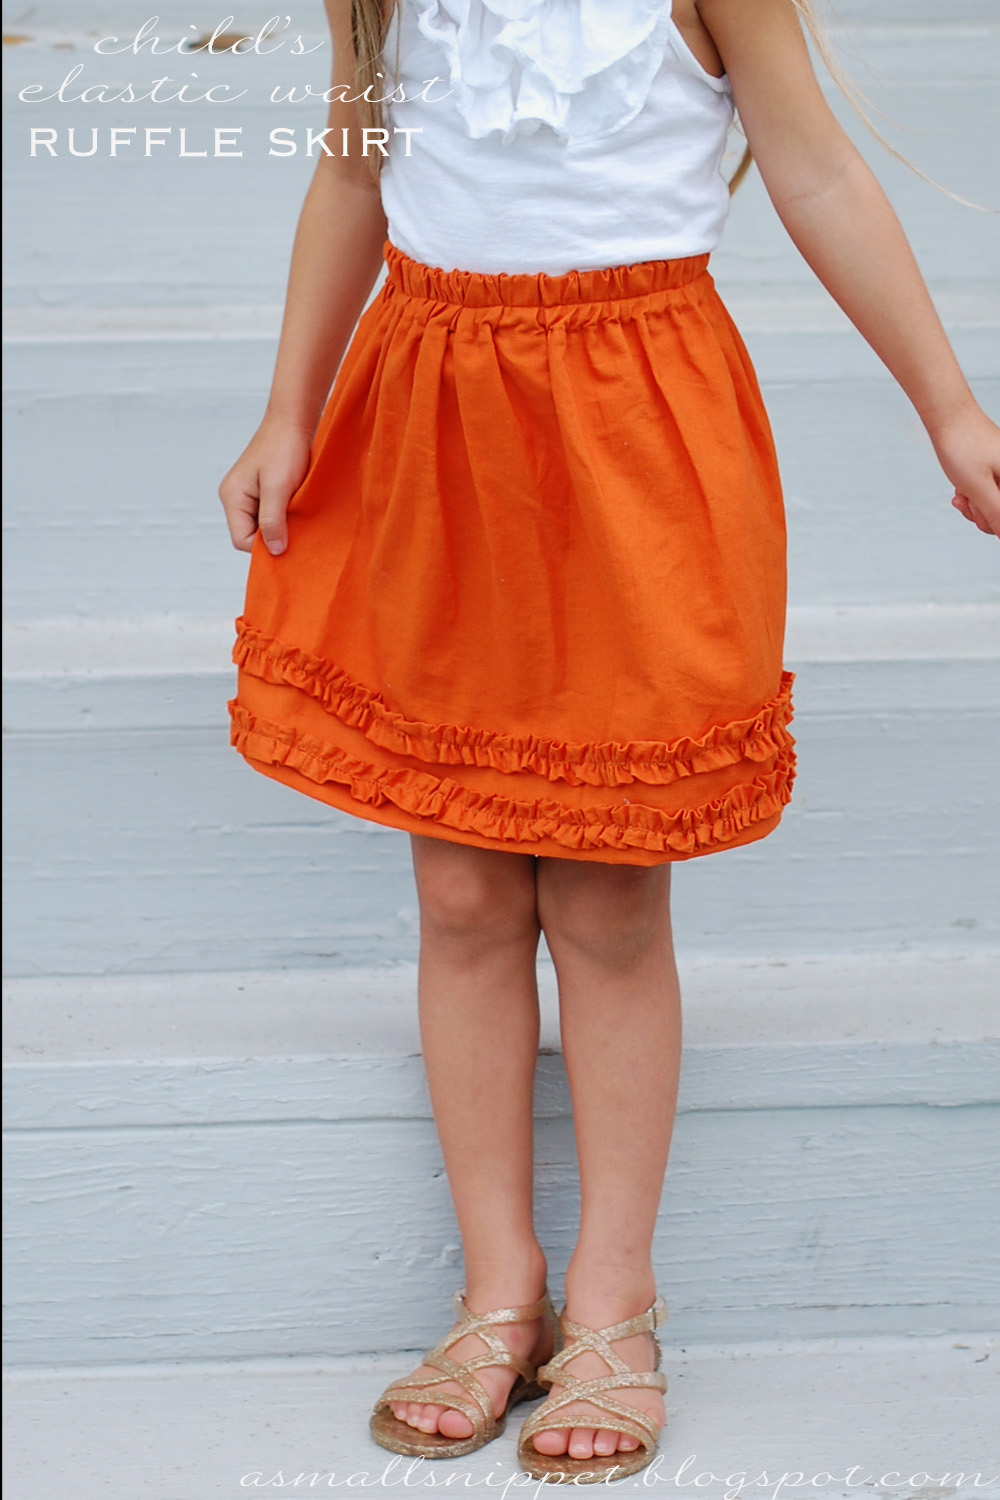 Cute Women's Skirts to Freshen-up Your Style. The end of summer doesn't have to mean Earn Rewards Points · % Off Boots · 60% Off Outerwear · Free Shipping to StoresTypes: Dresses, Tops, Jeans, Activewear, Sweaters, Jackets, Maternity.